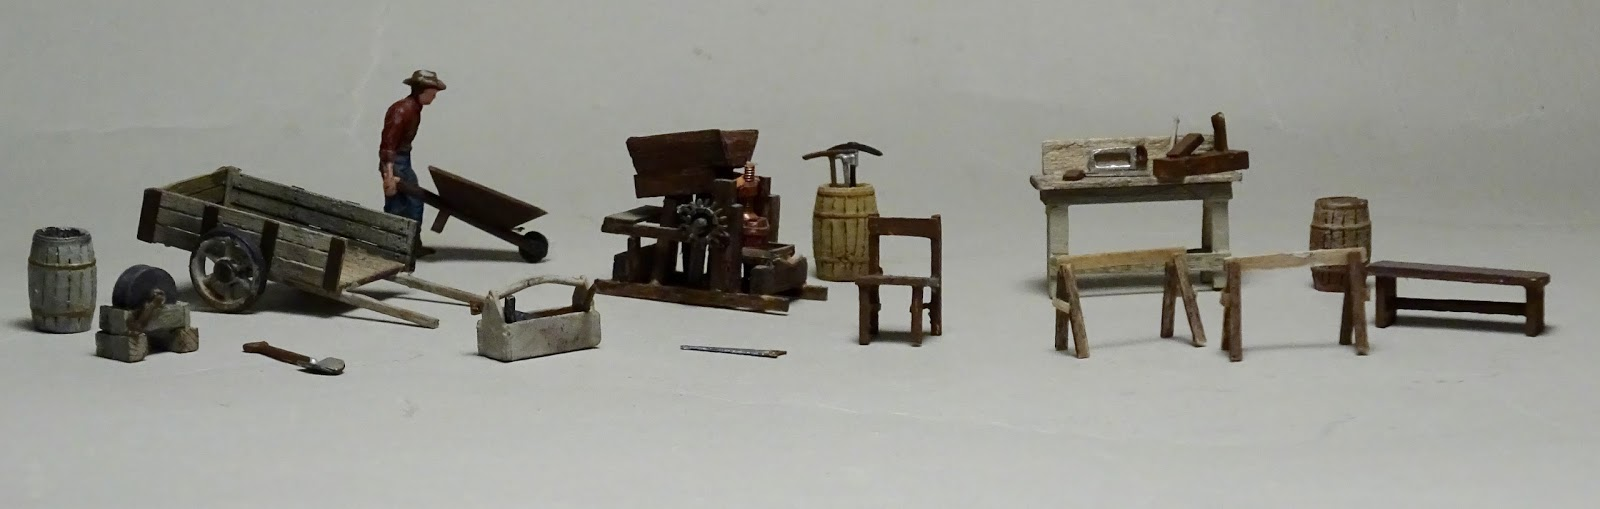 hight resolution of  scratch built as are the chair bench work bench saw horses and the strange machine in the center that machine is being repaired by the carpenter